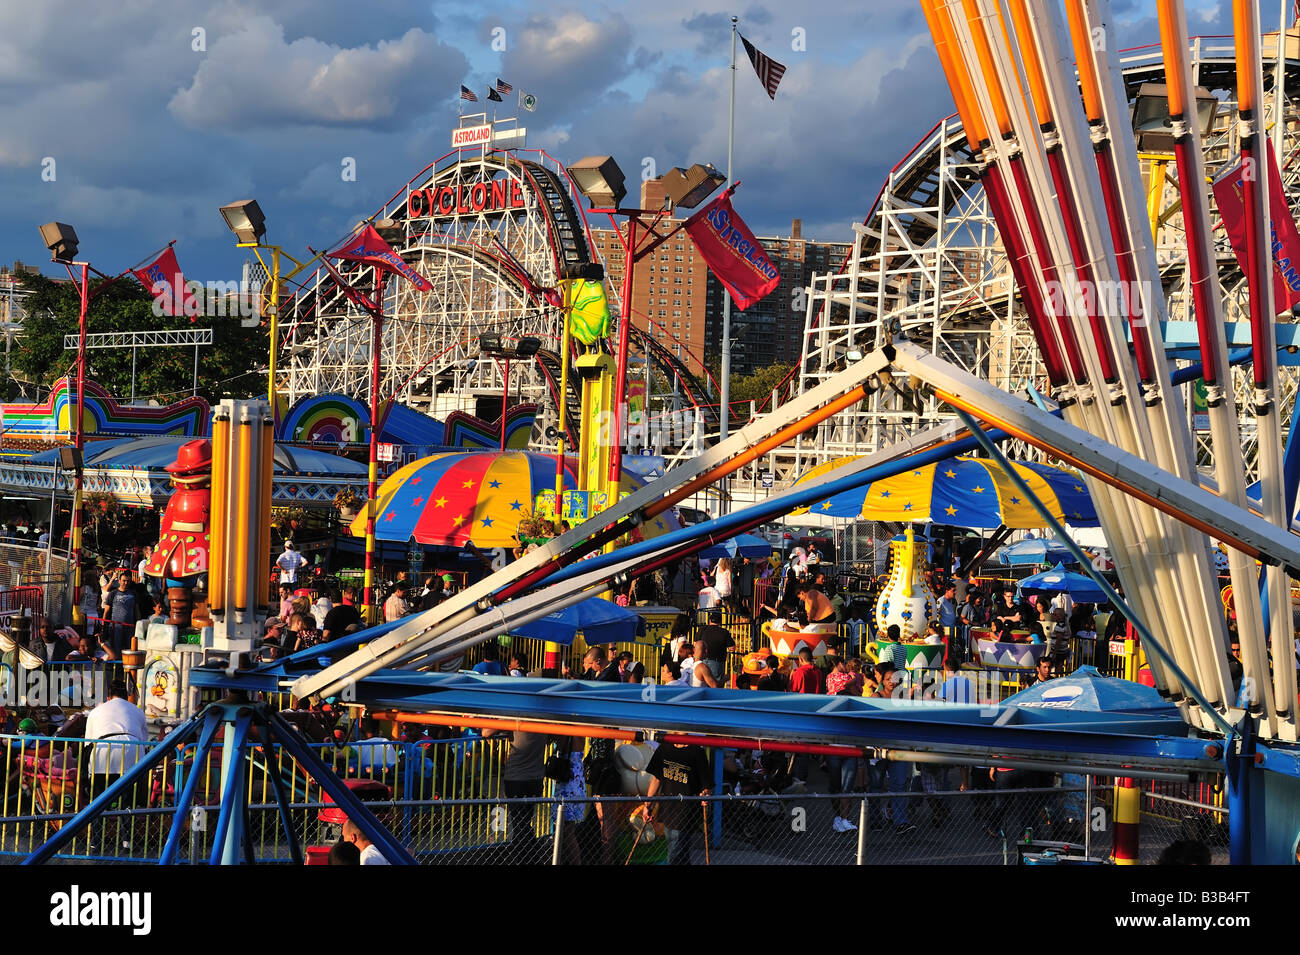 Astroland Park, Coney Island New York, including the famed Cyclone roller coaster - Stock Image